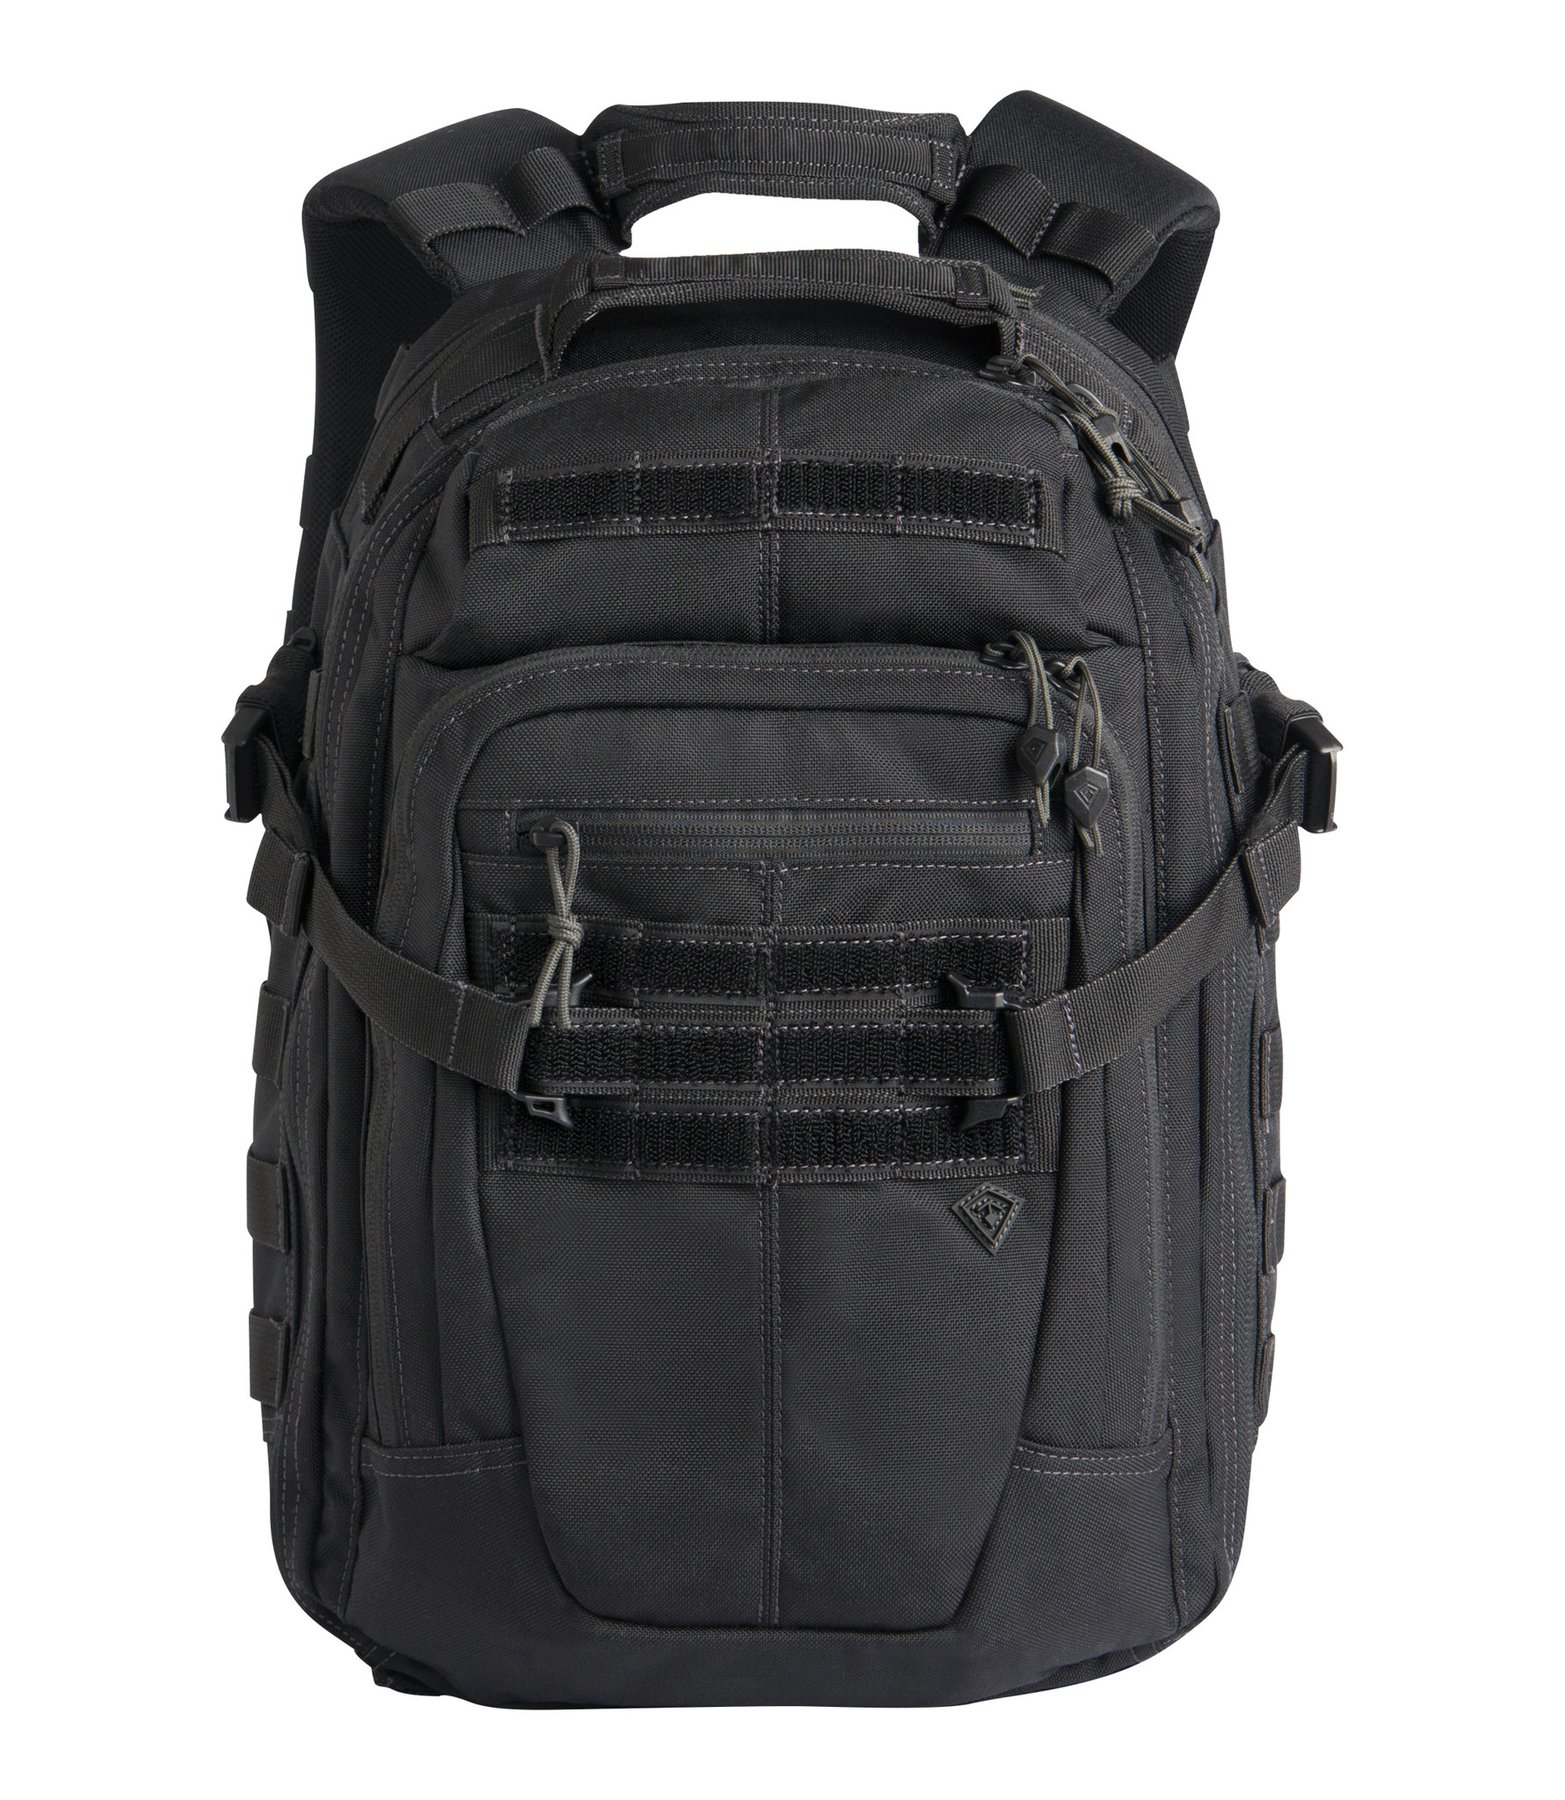 SPECIALIST HALF-DAY BACKPACK 25L-First Tactical